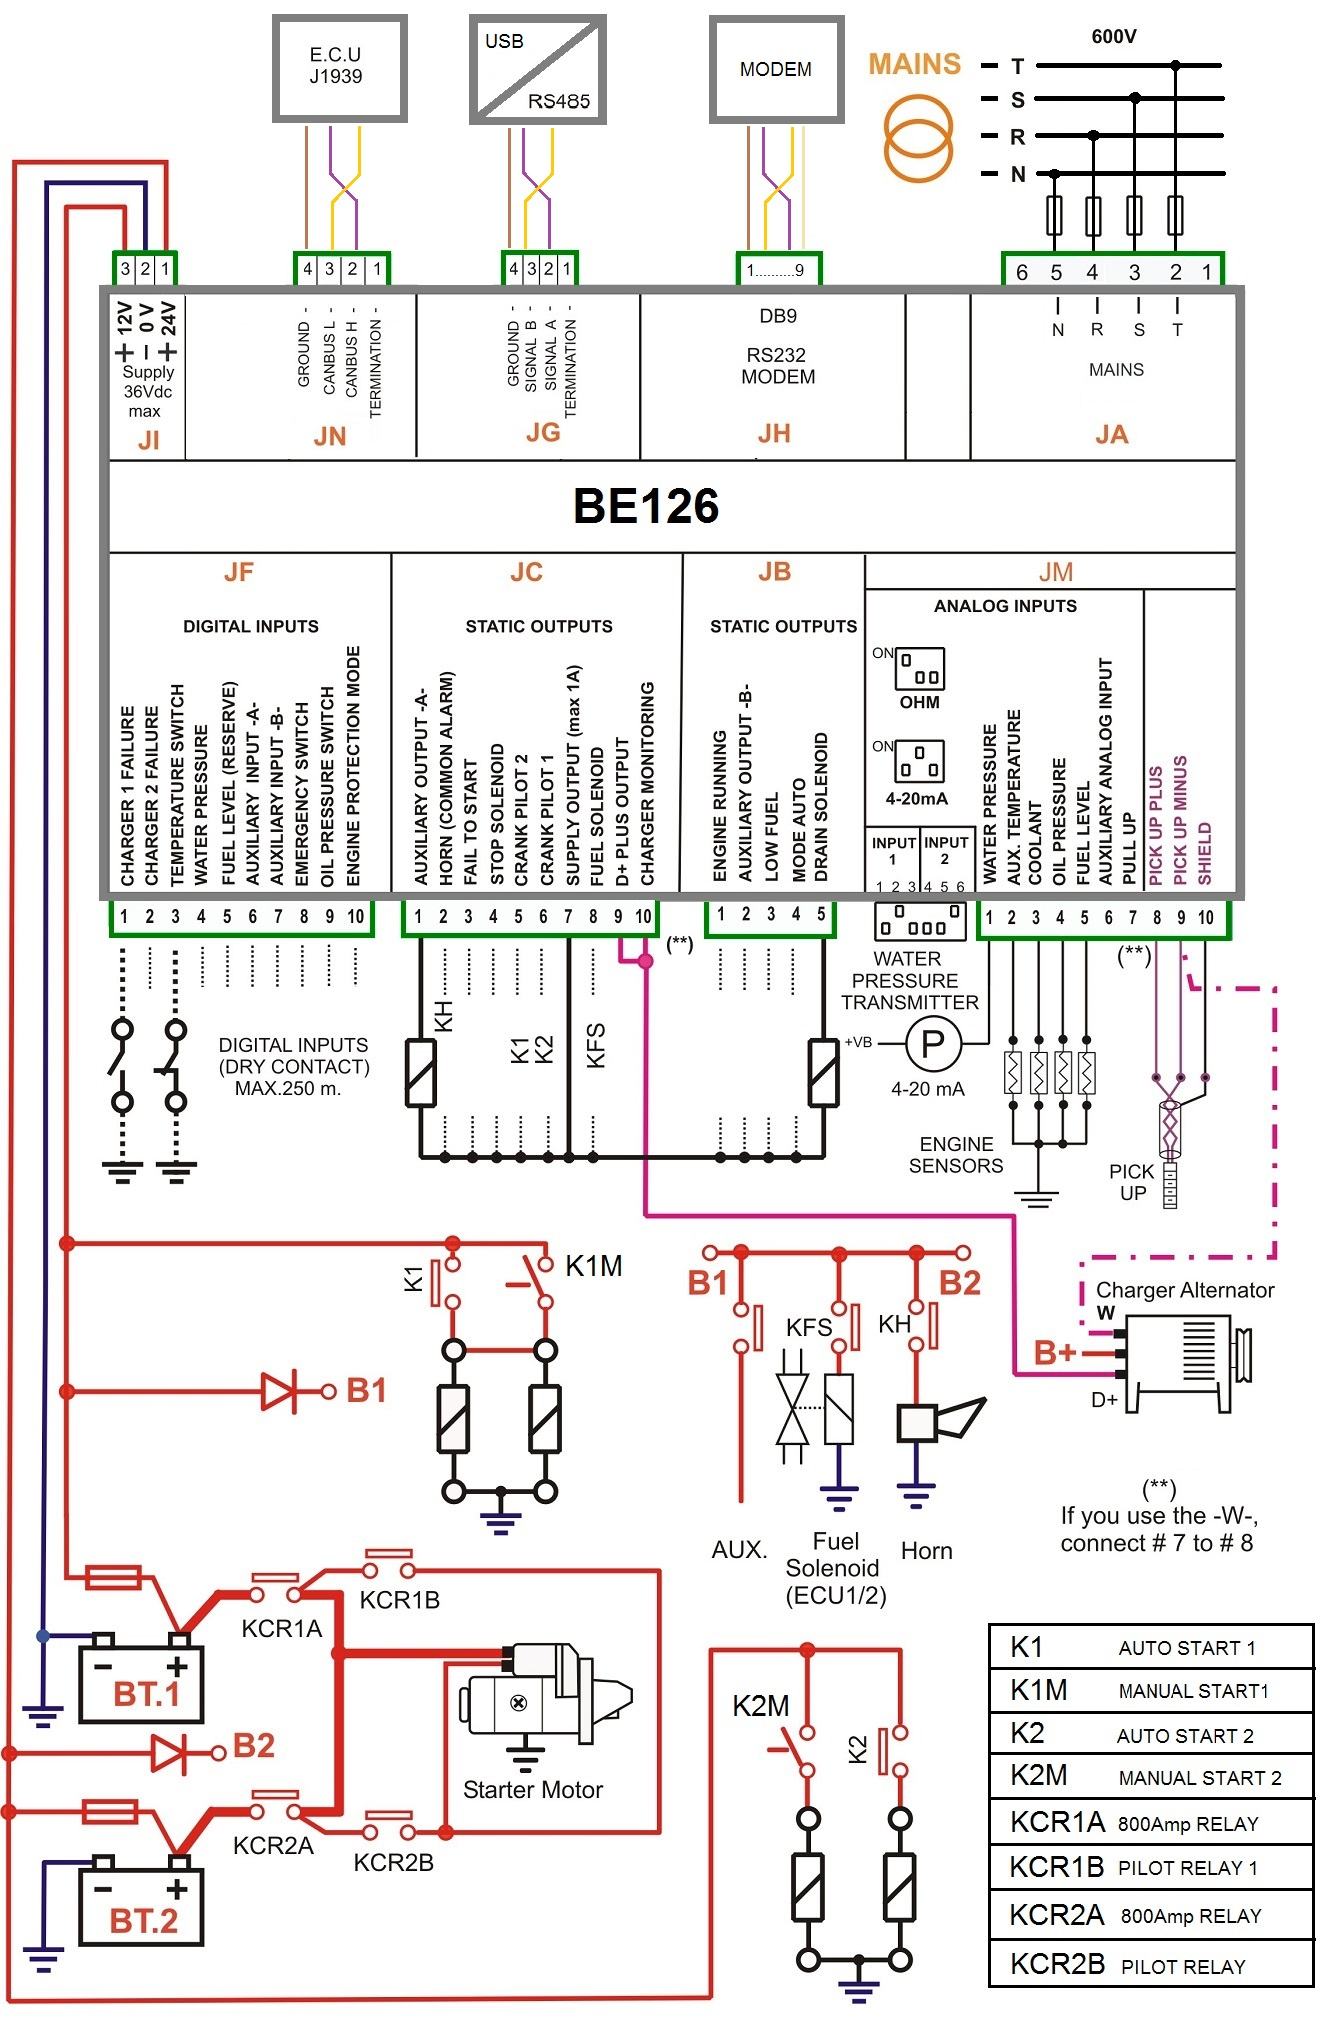 NFPA20 fire pump controller wiring diagram fire pump wiring diagram fire pump electrical requirements \u2022 free 220 centrifugal pump wiring diagram at beritabola.co